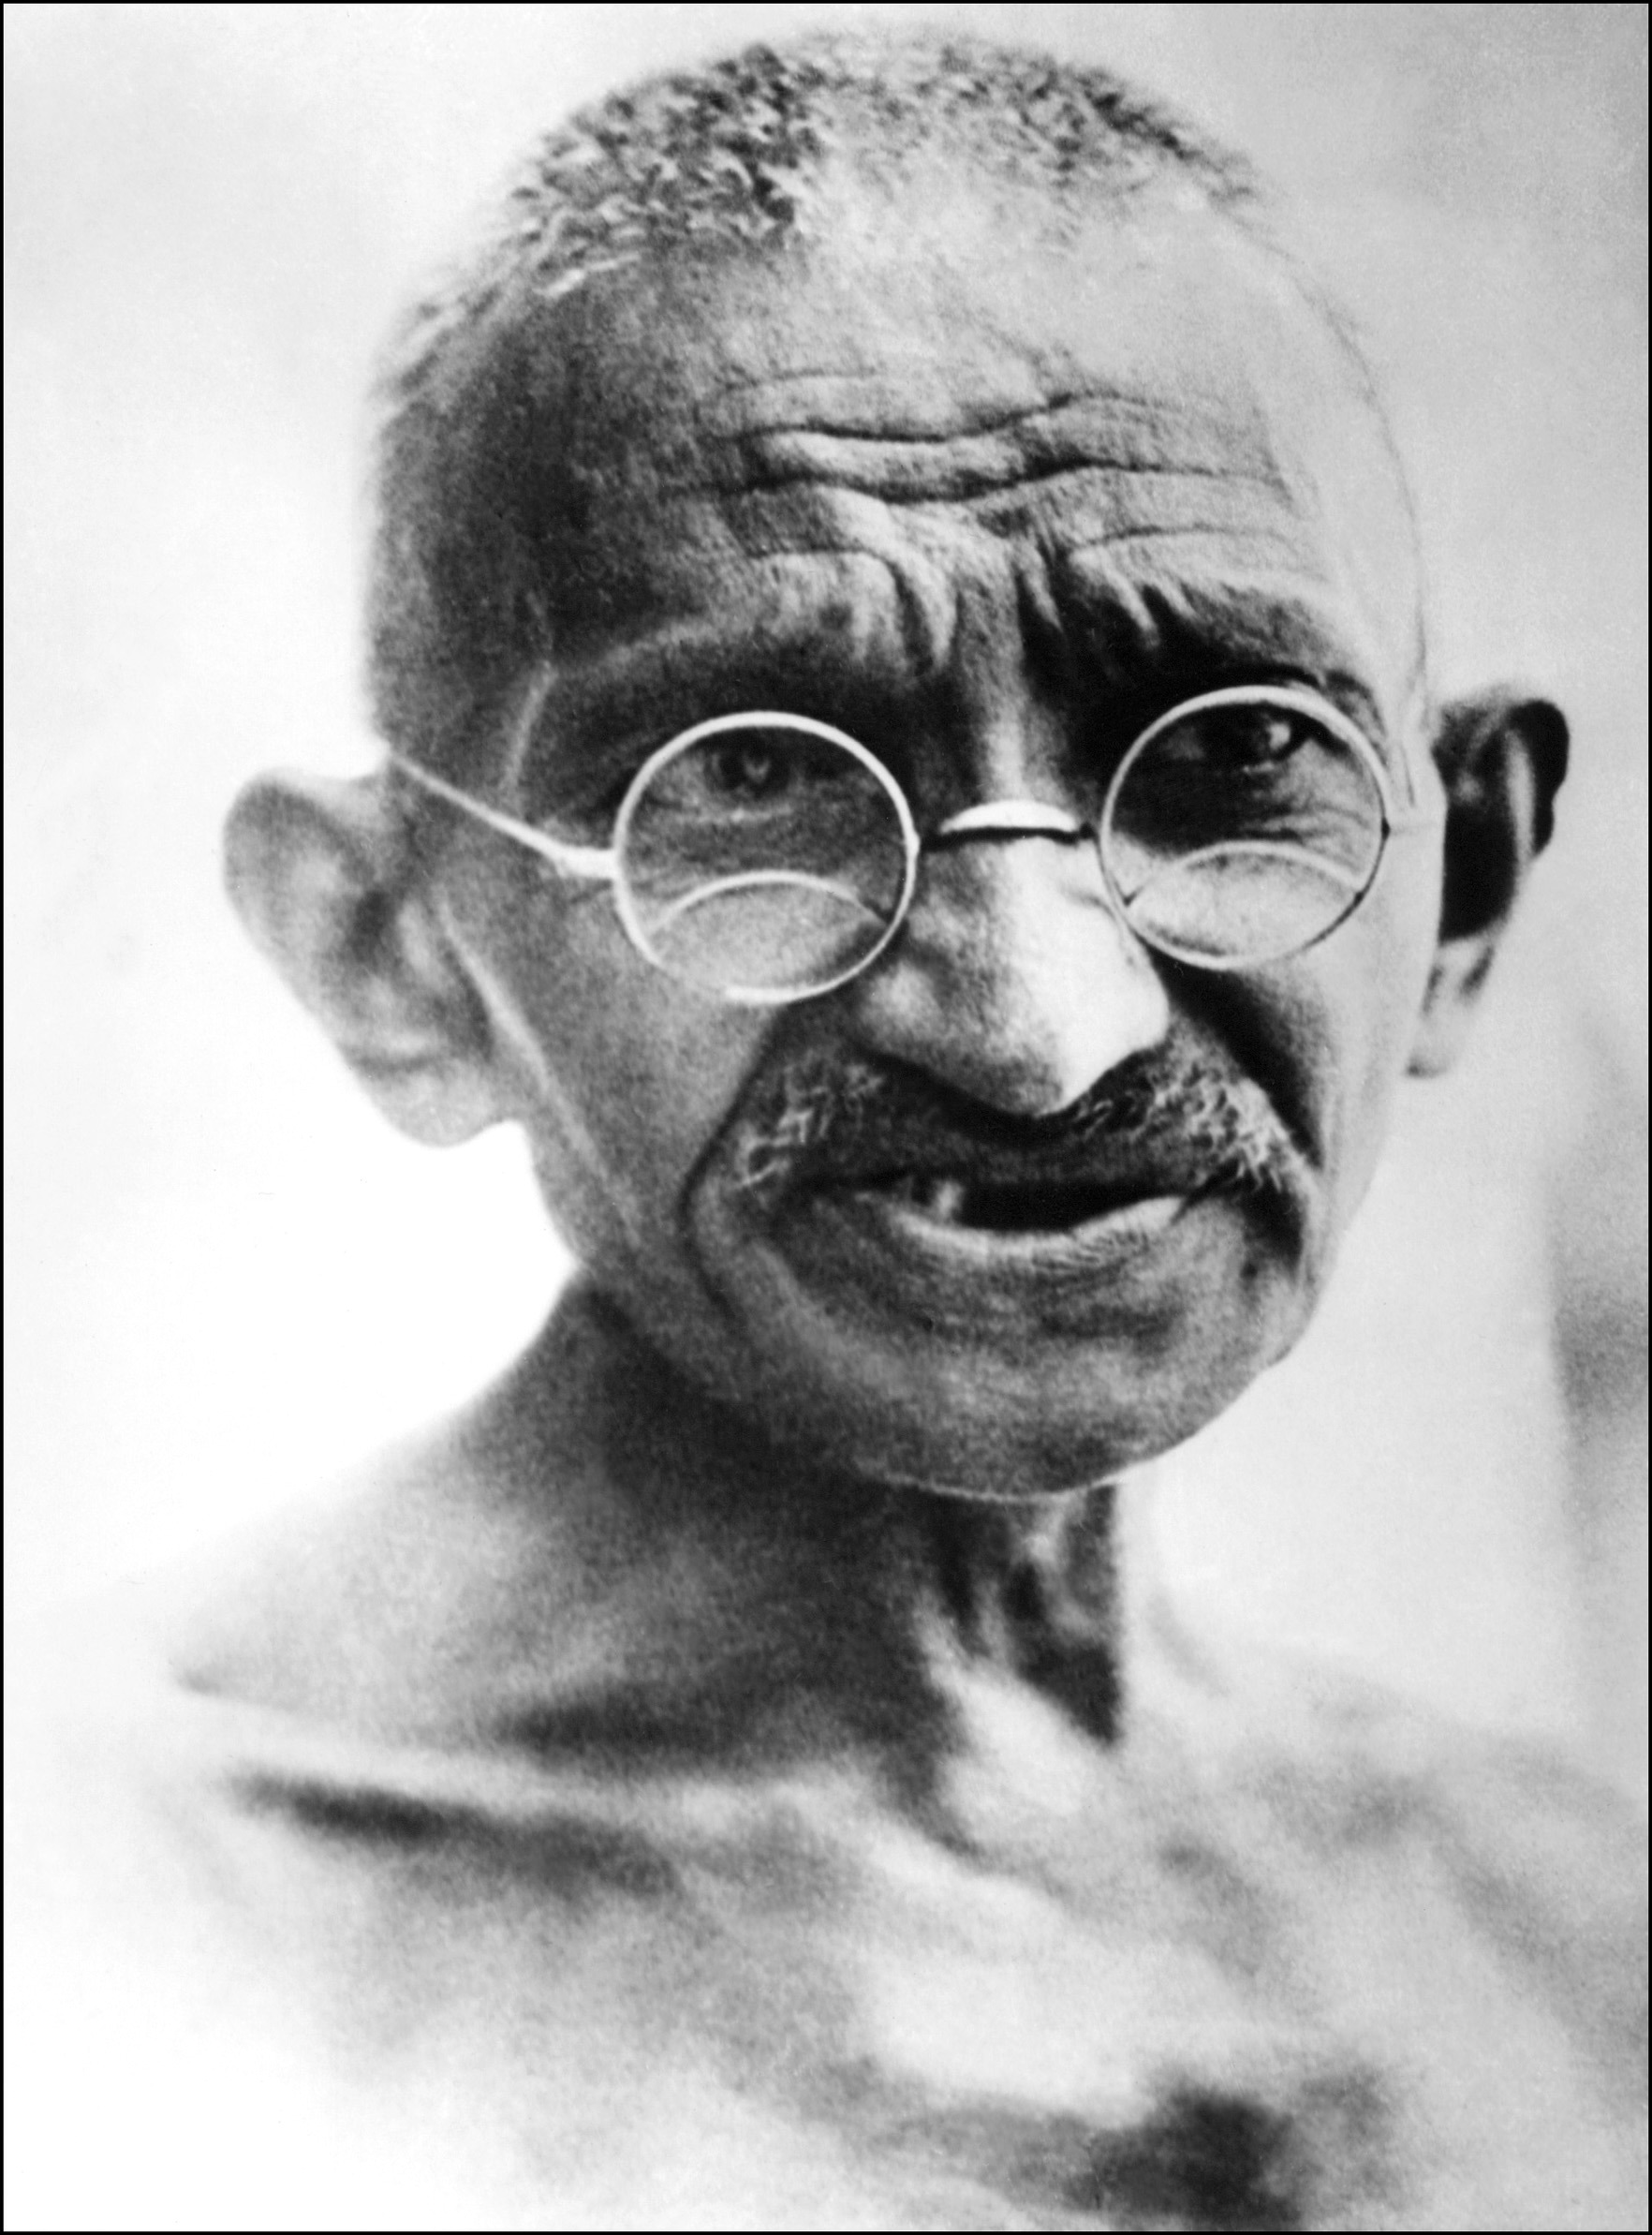 US author fights back in Gandhi 'gay lover' row - World